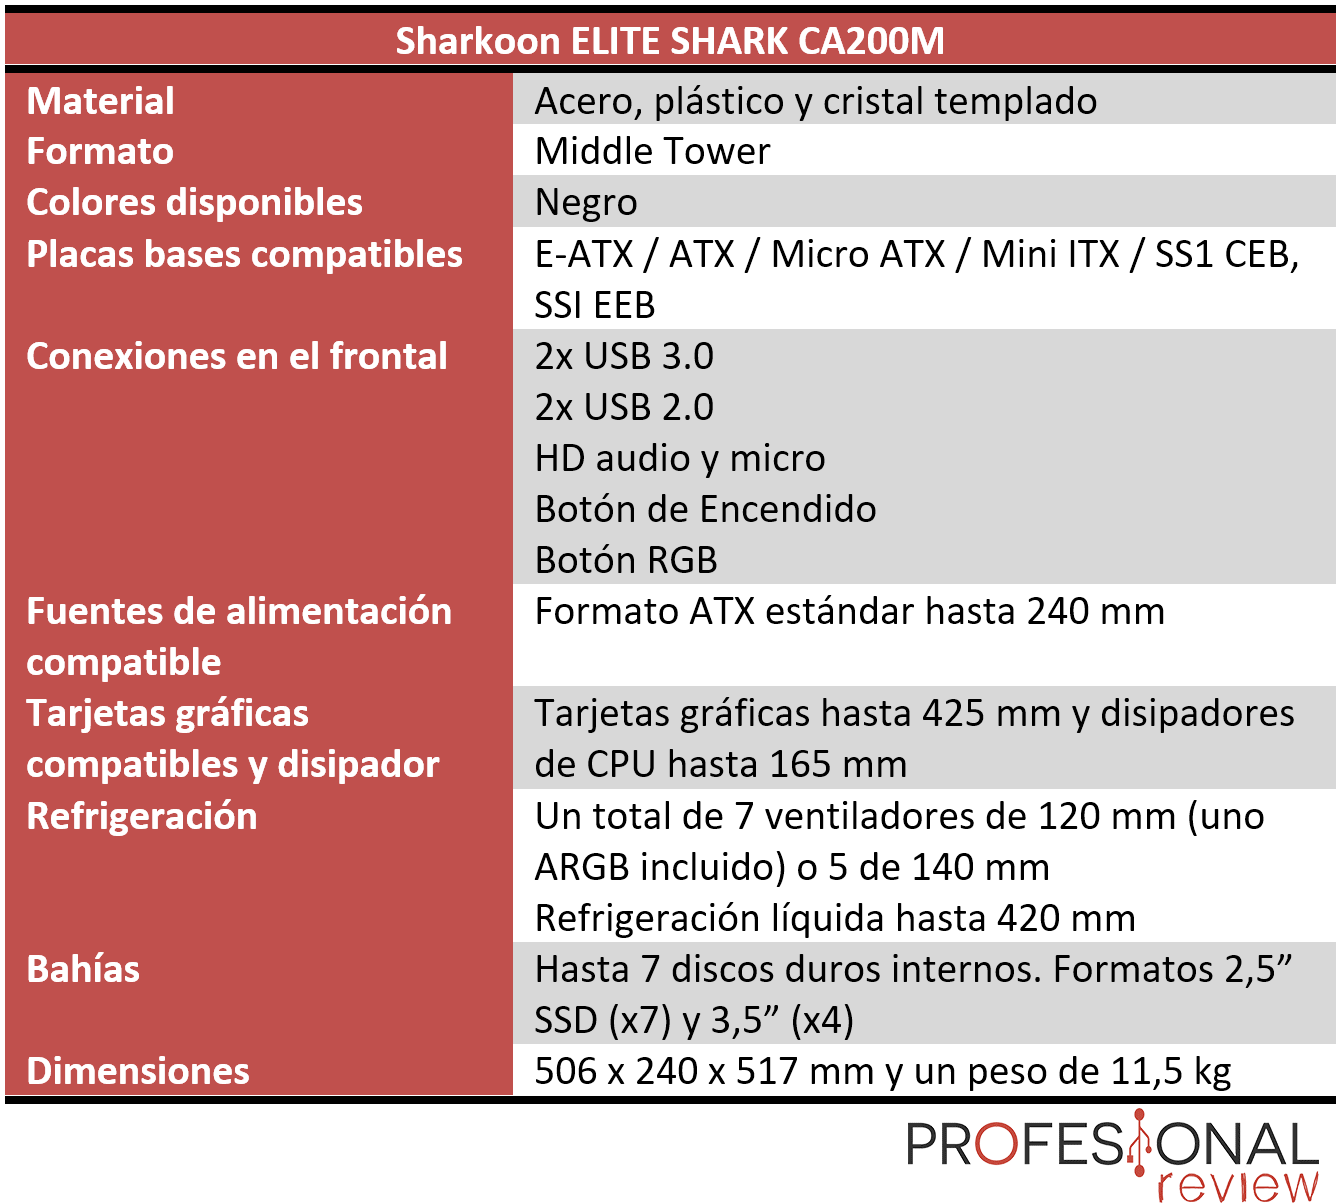 Sharkoon ELITE SHARK CA200M características